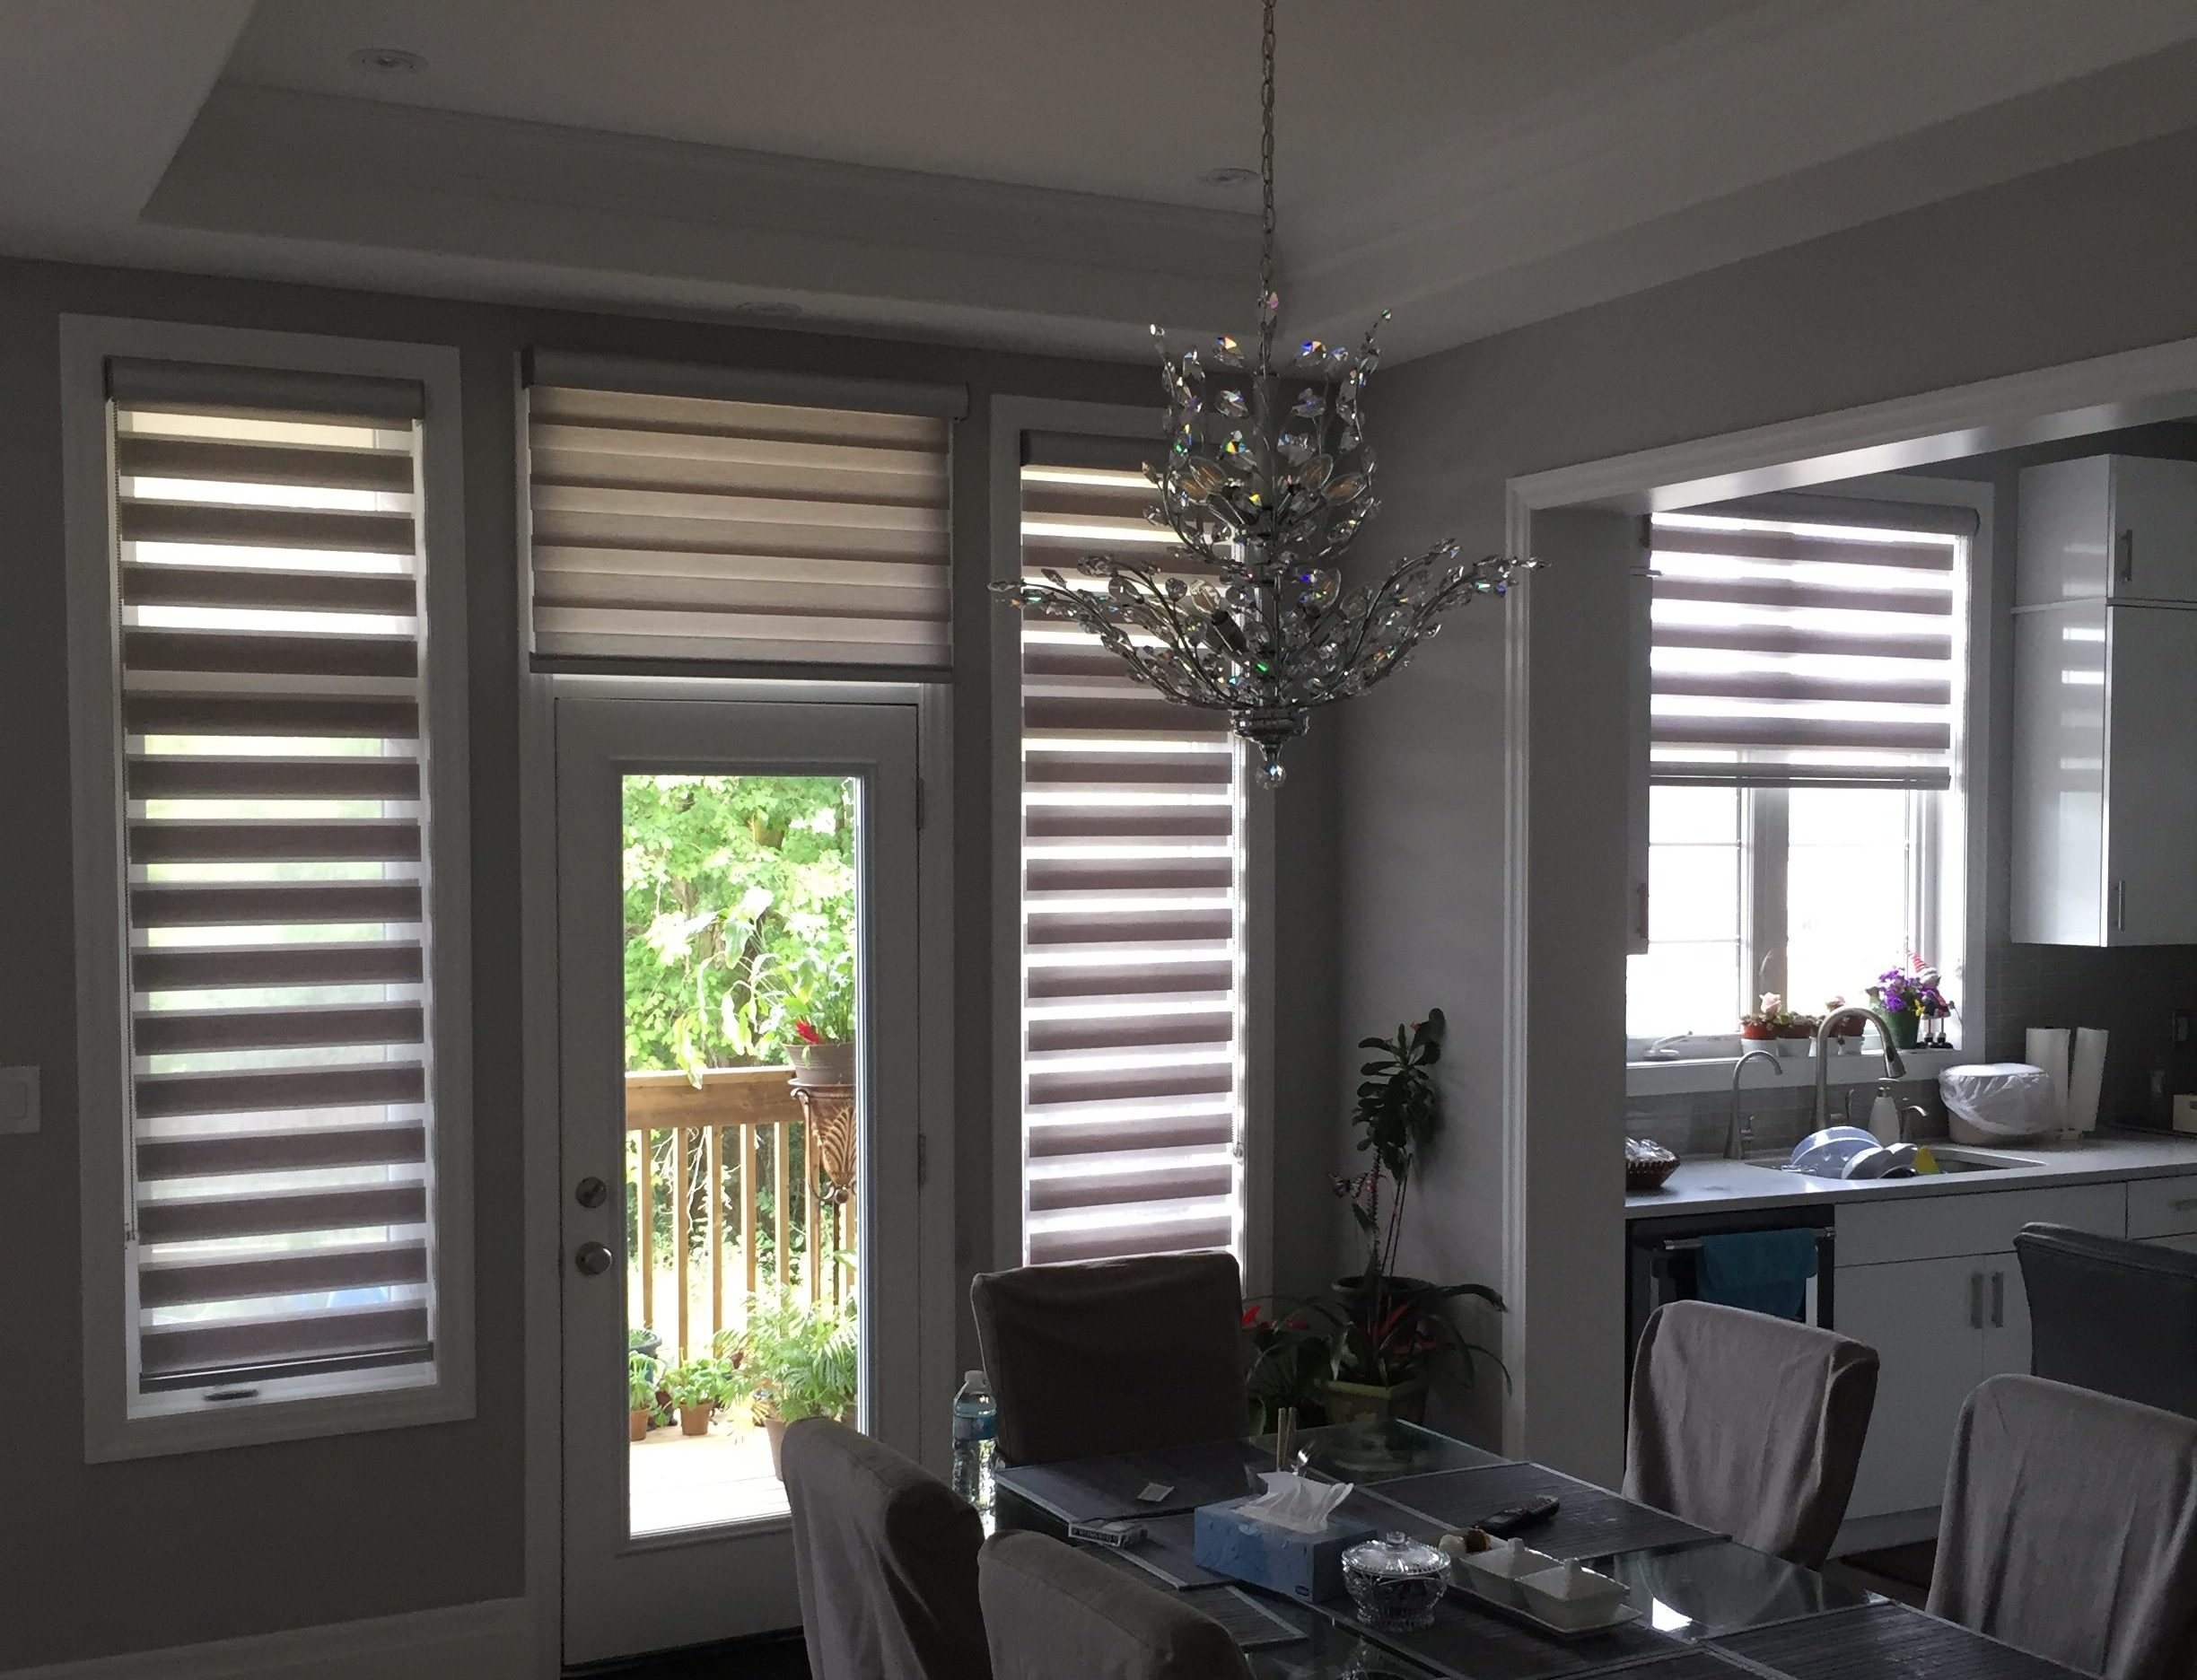 shades fabric cambridge romans newton in roman blinds prevnext homes custom ma window